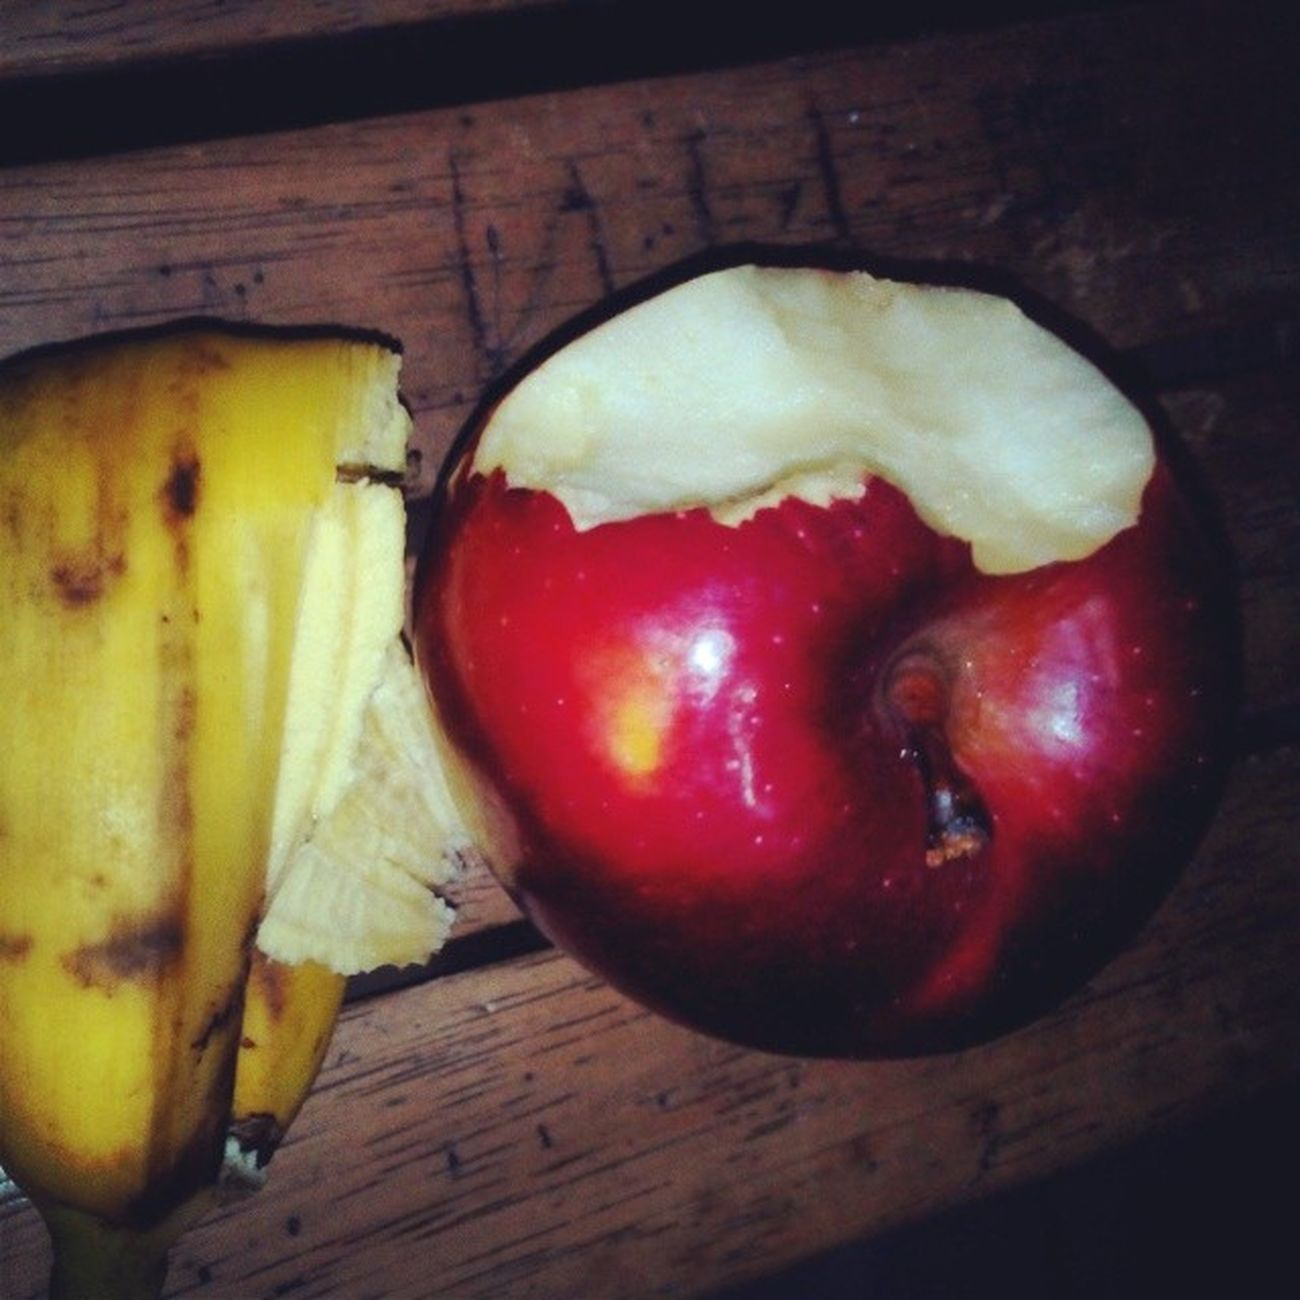 Dinner Apple Banana Lakatan Sweettooth fruits fresh delicious healthy vitamins instafood instapics